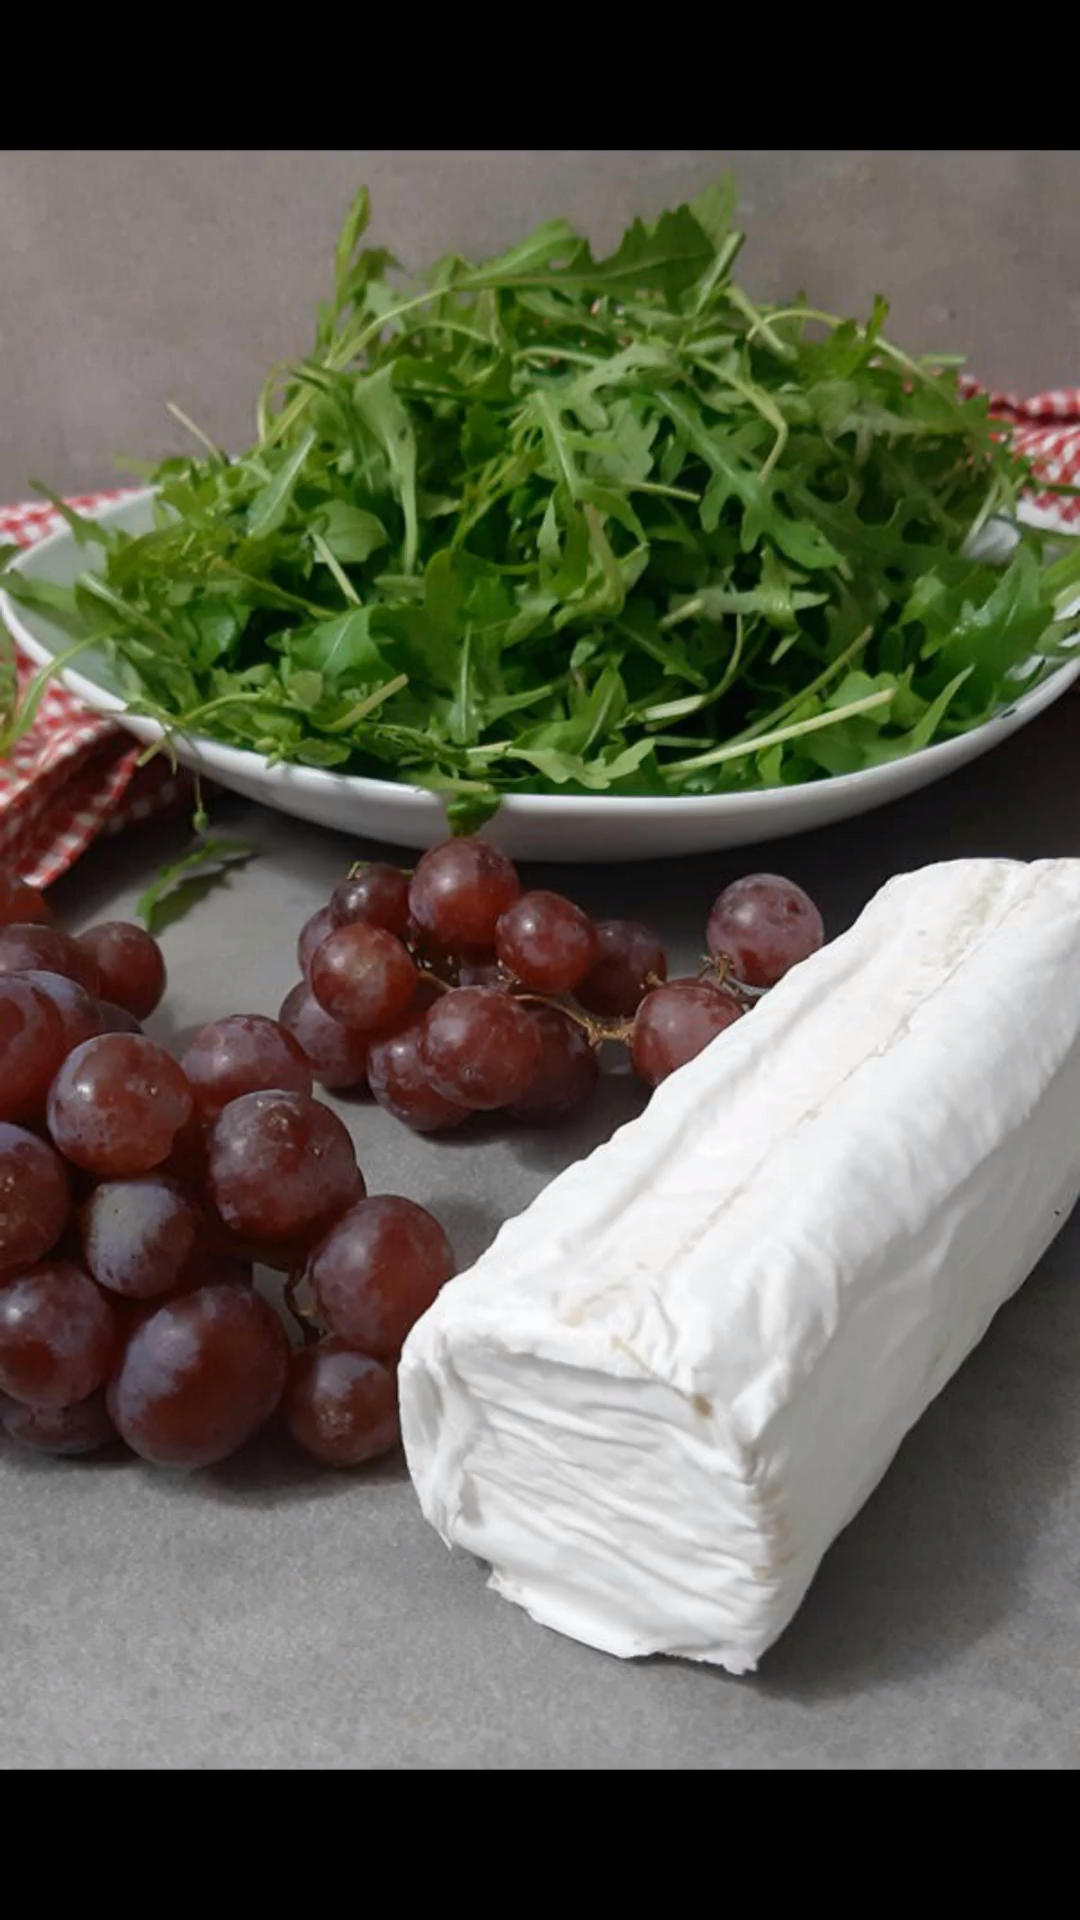 Photo of 5 minutes lightning salad with grapes, goat cheese and arugula